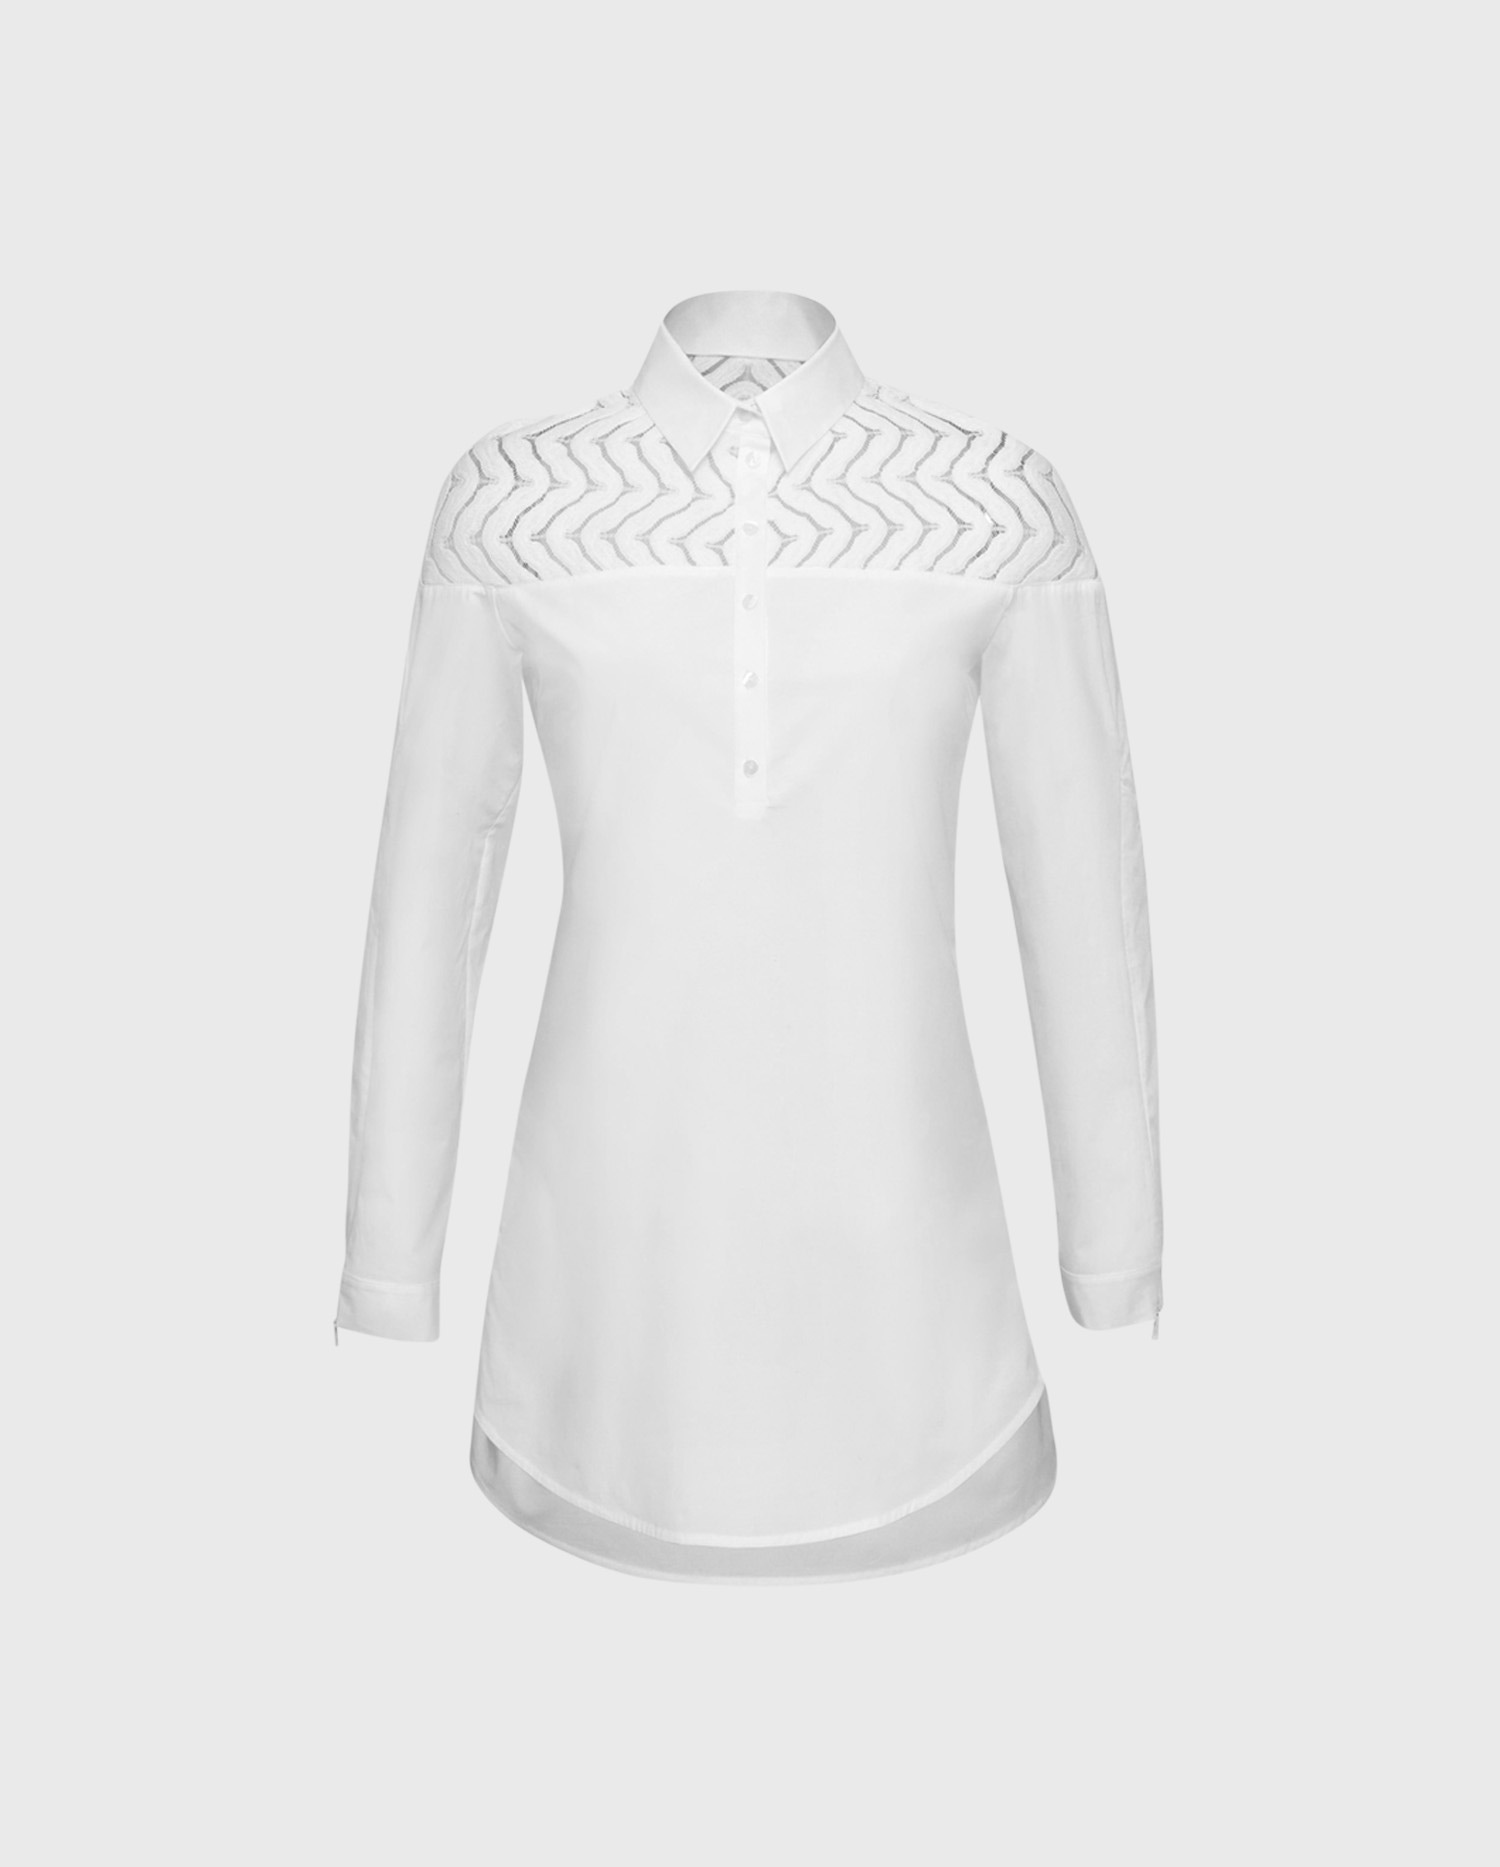 The Barbara white long sleeve shirt with intricate details will take youe style to new heights